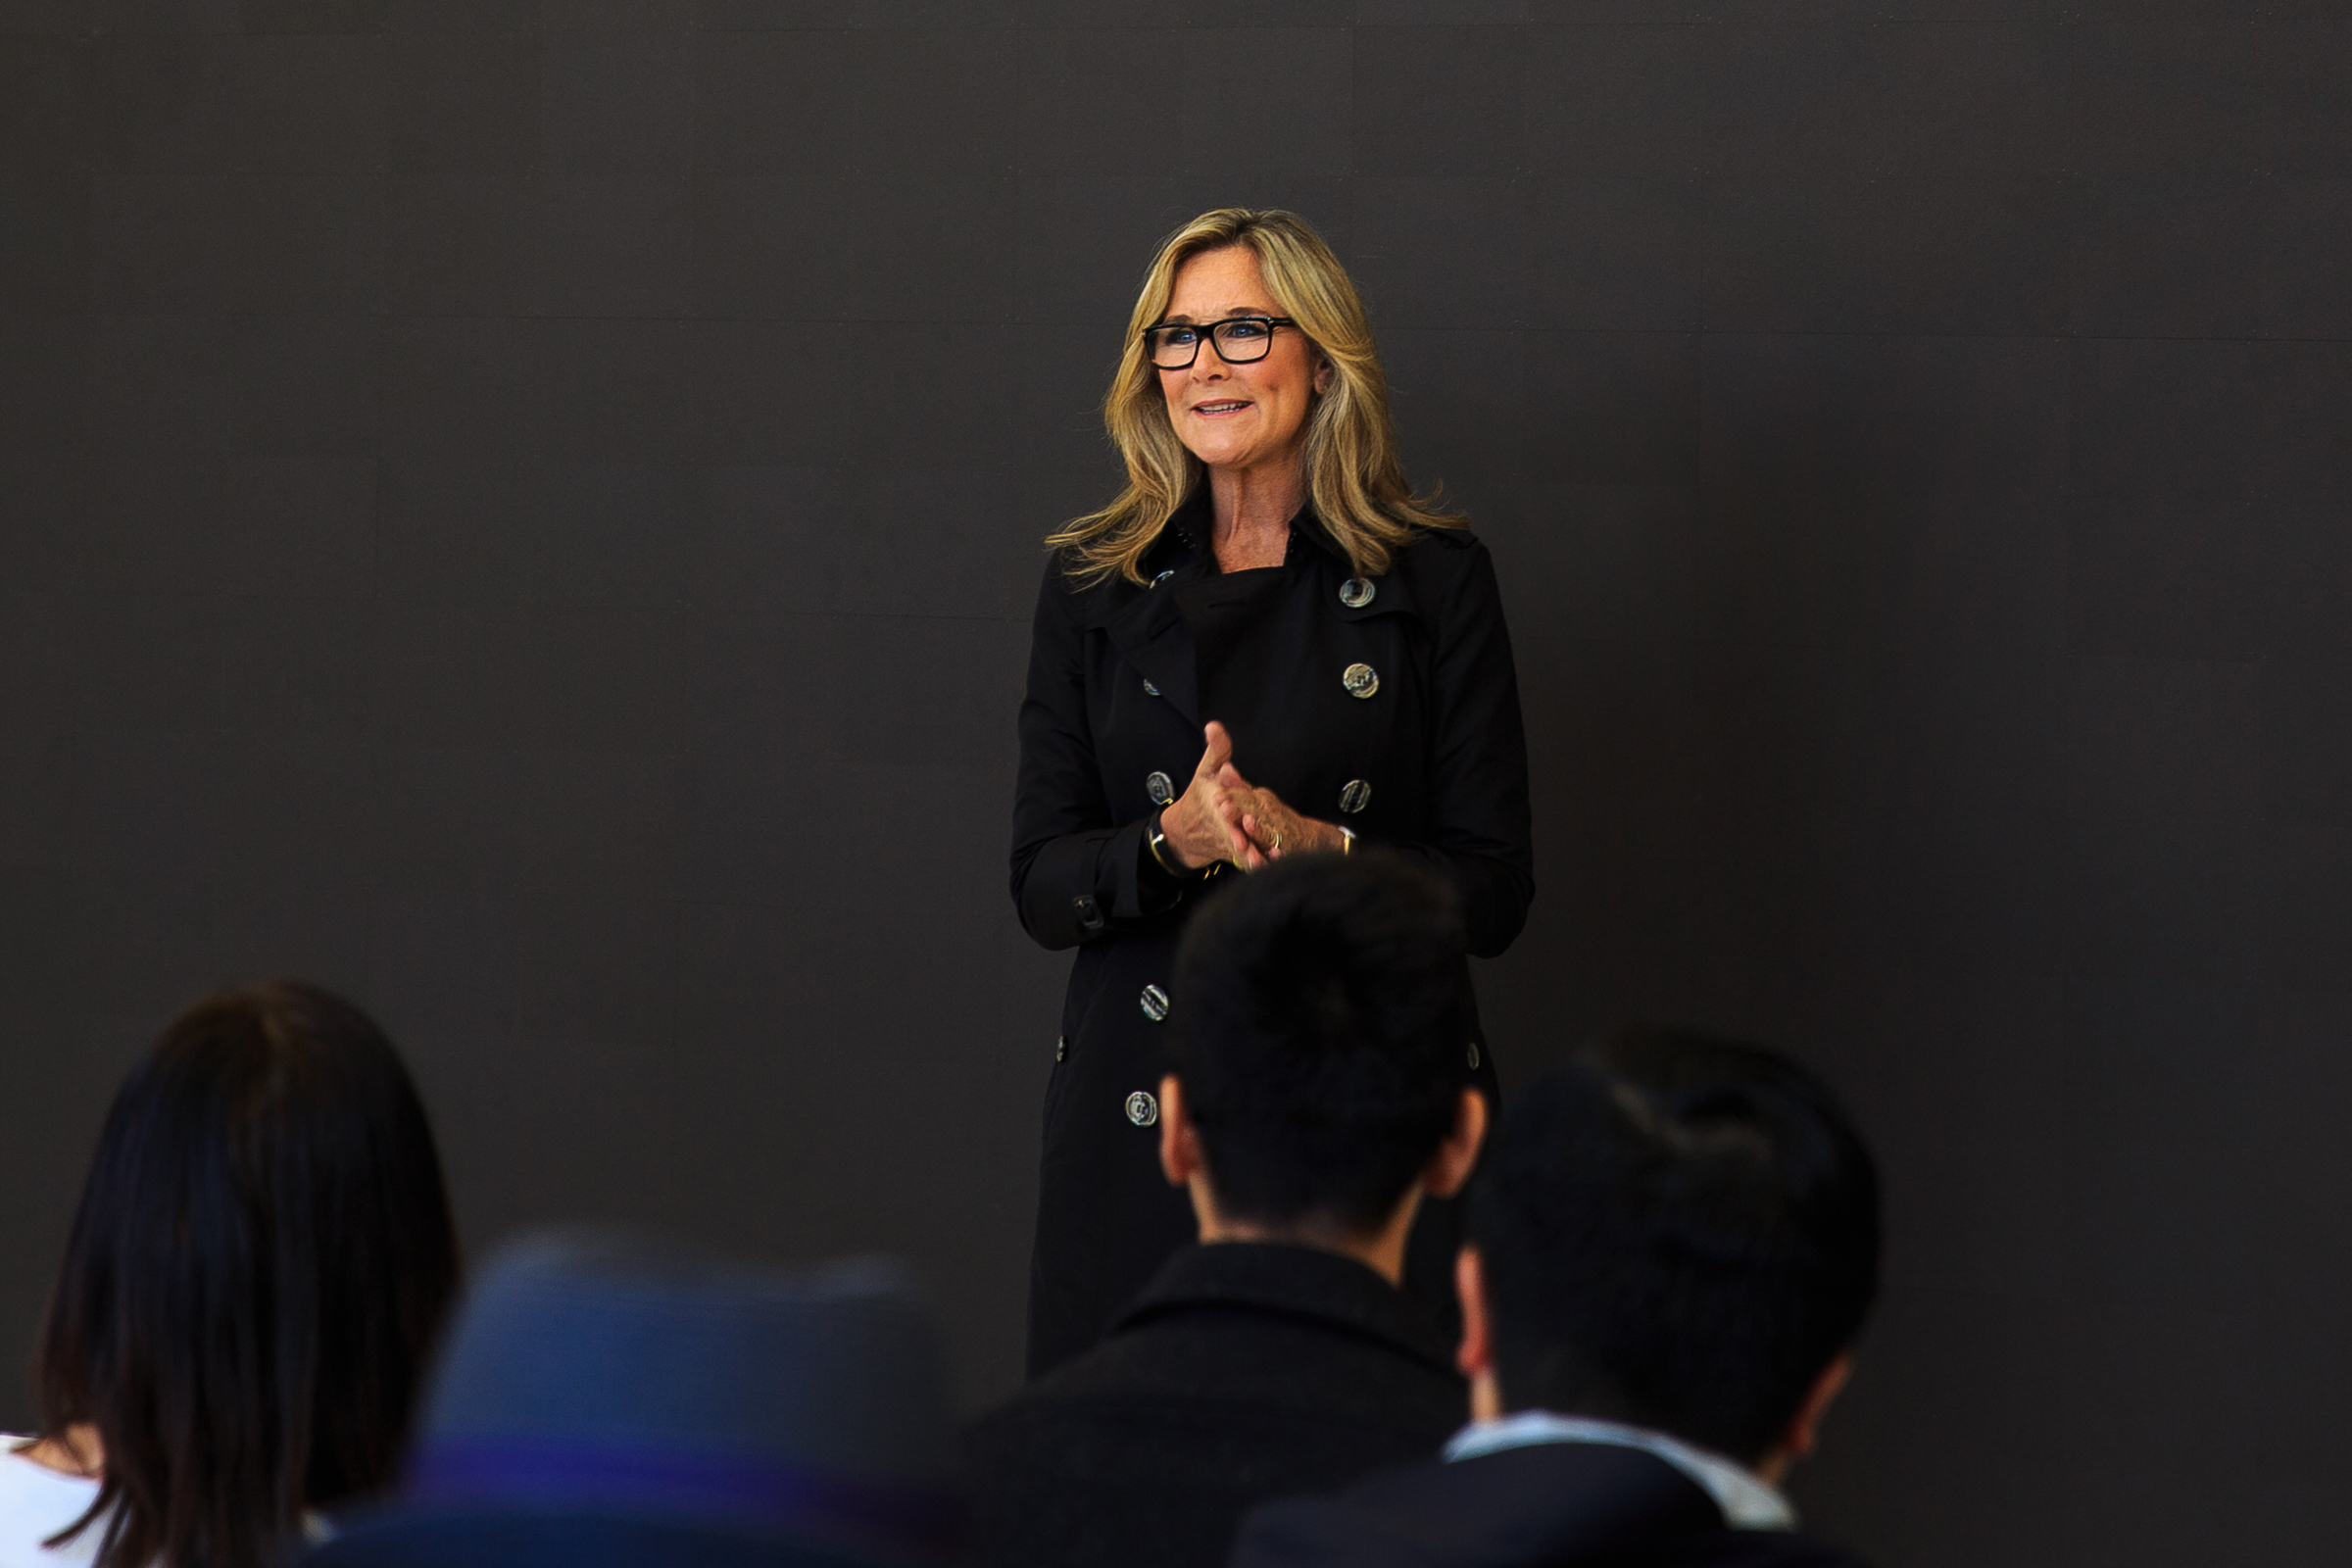 Angela Ahrendts, The Retailer